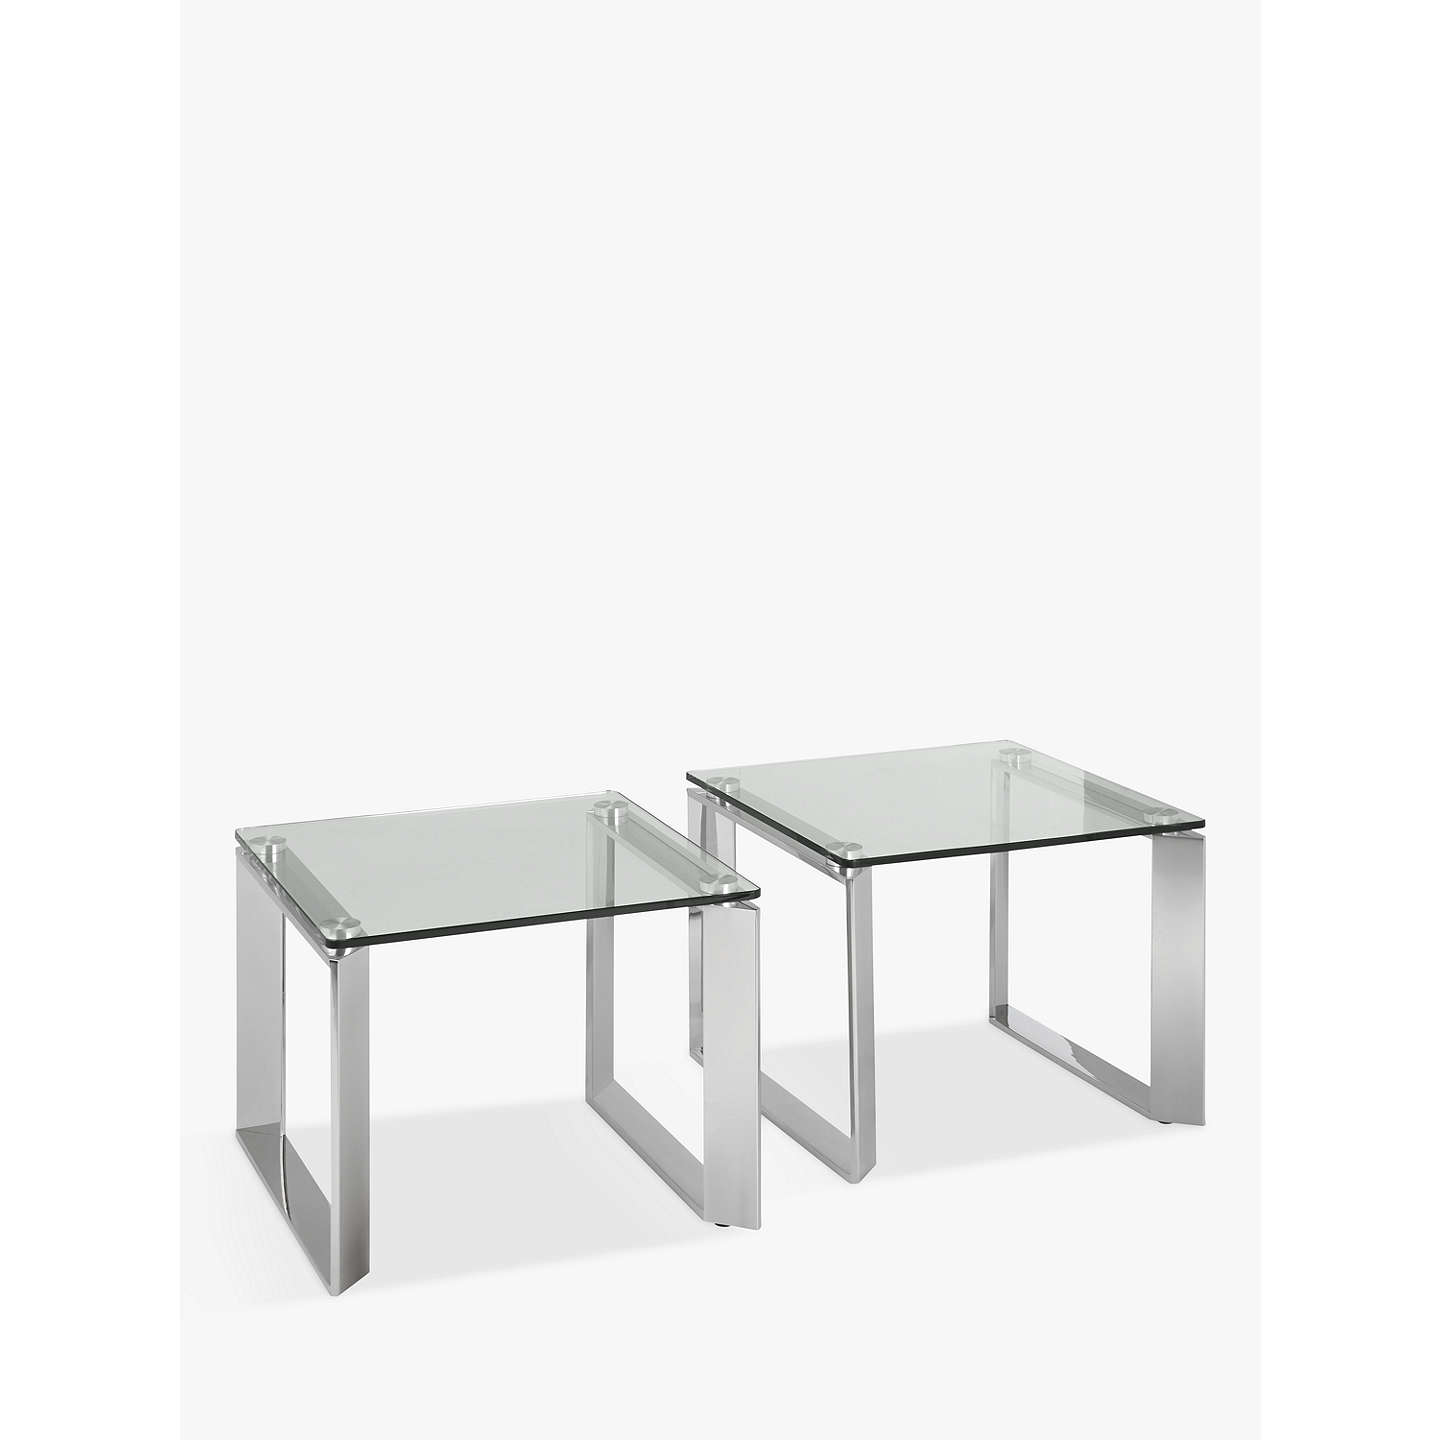 BuyJohn Lewis Tropez Small Side Tables Set of 2 Online at johnlewis.com ...  sc 1 st  John Lewis & John Lewis Tropez Small Side Tables Set of 2 at John Lewis